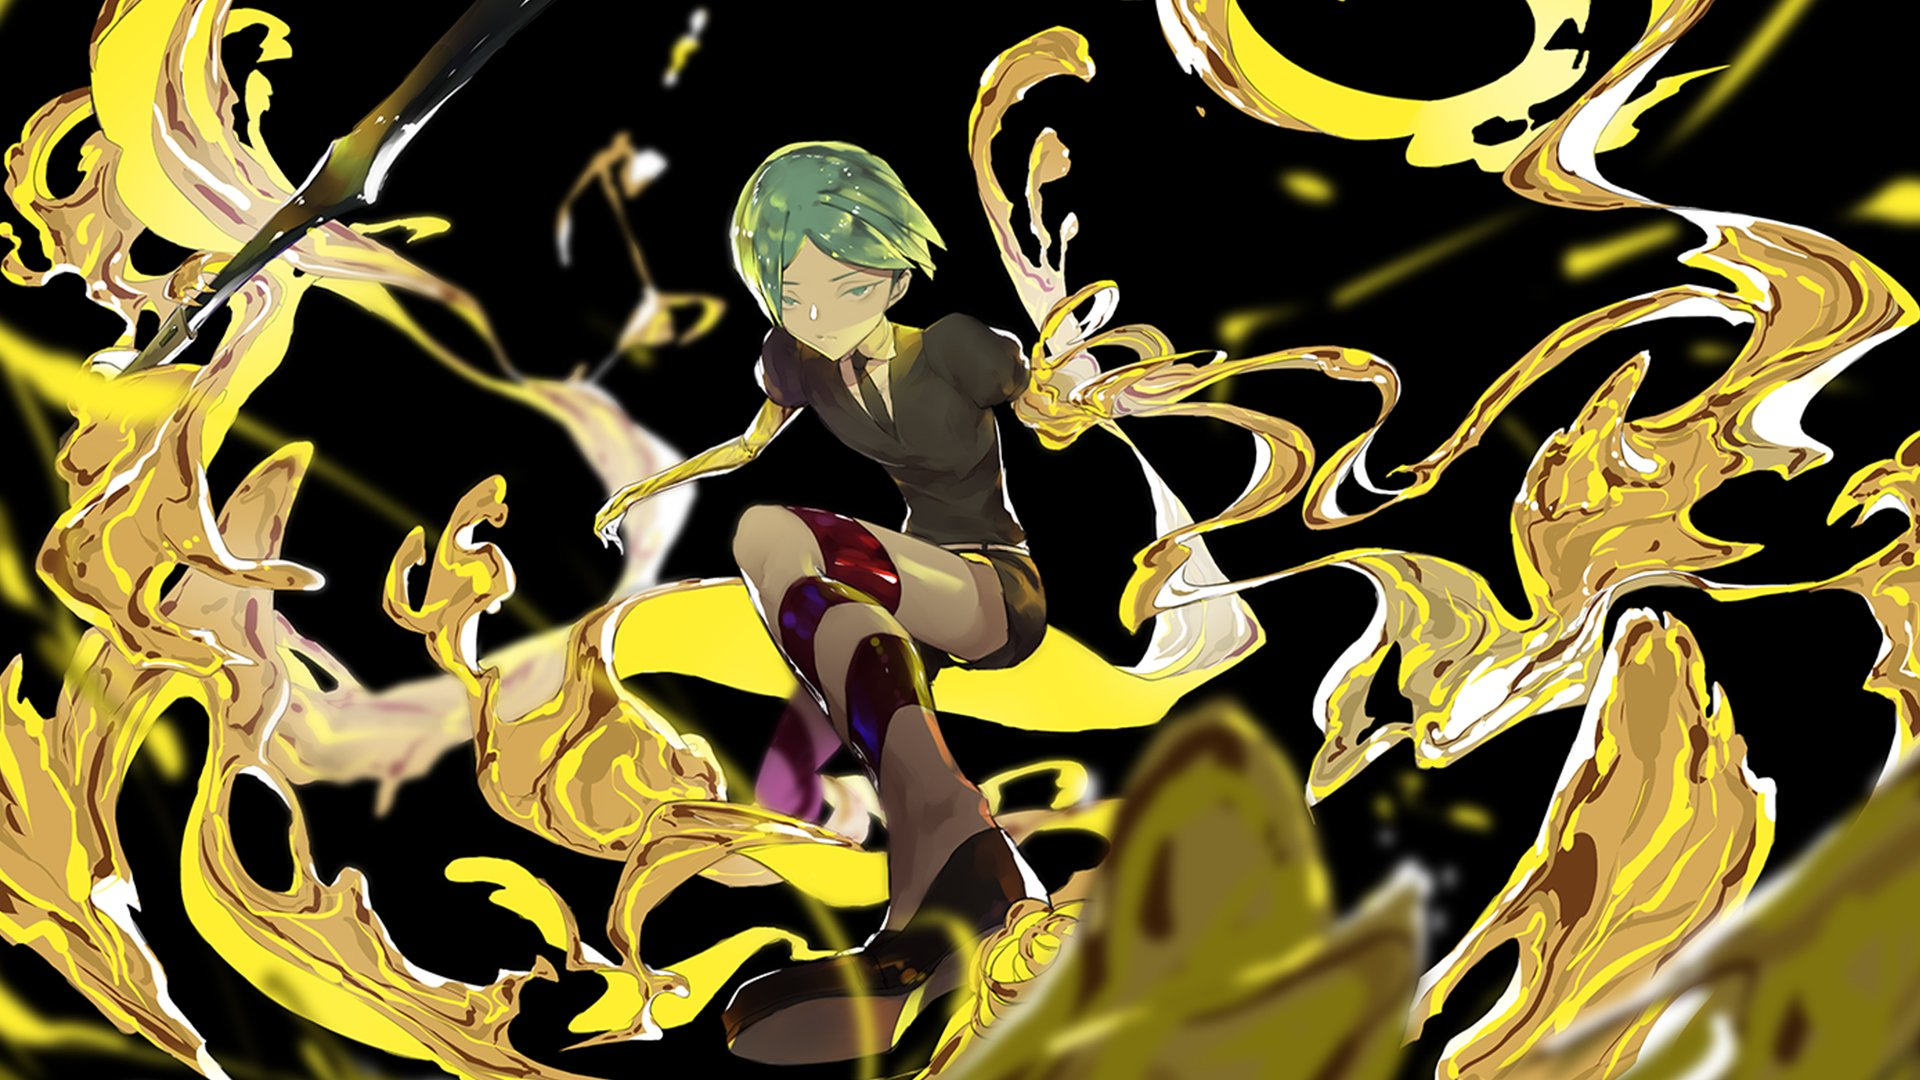 440 Houseki No Kuni Hd Wallpapers Background Images Wallpaper Abyss Page 9